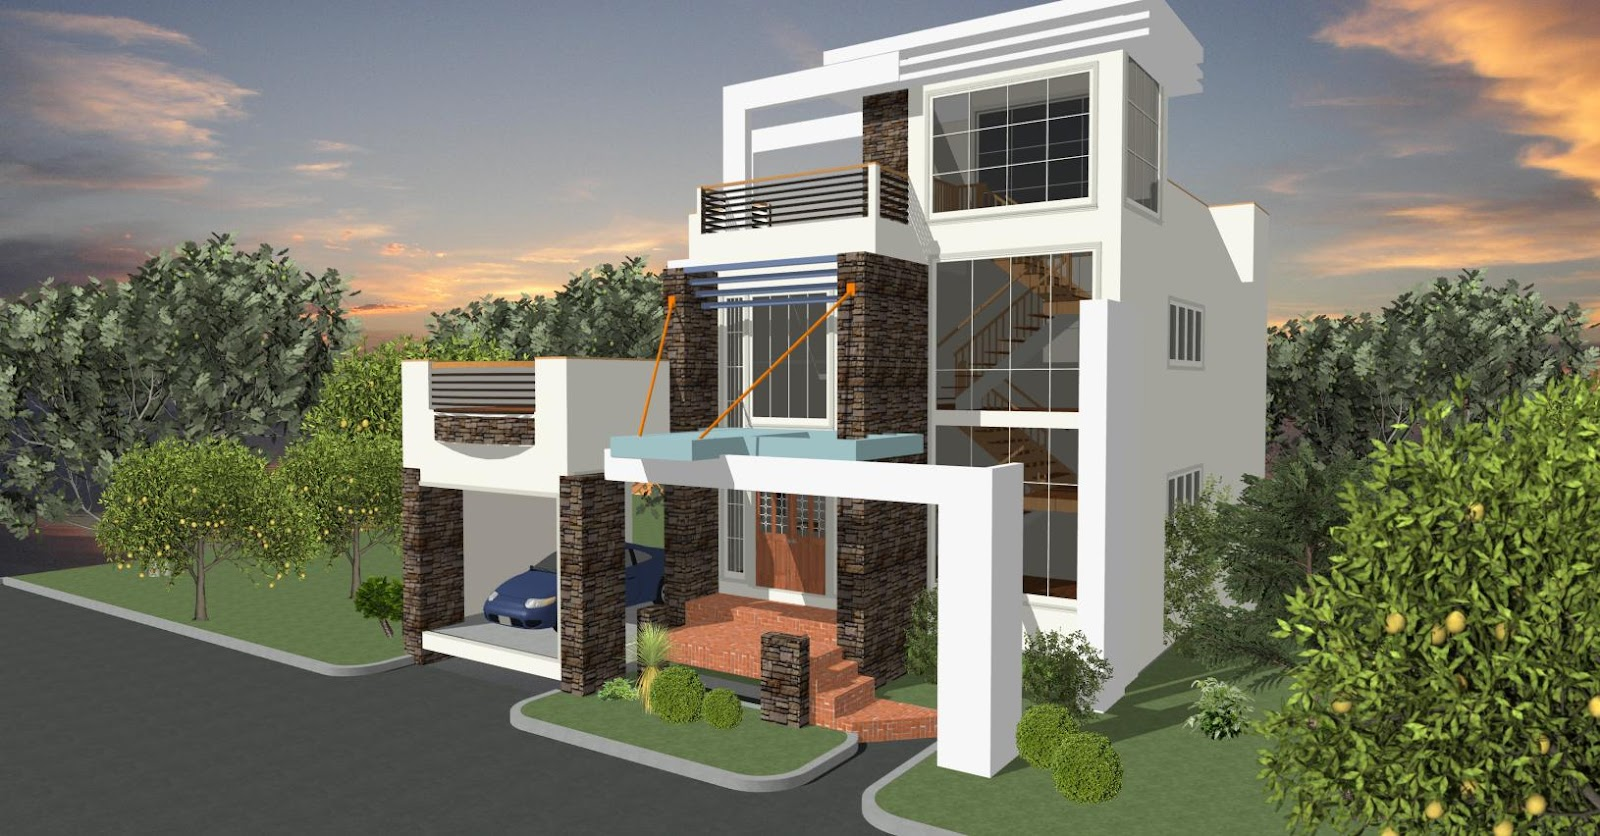 Model Home Designs Houses model philippines Home and house style